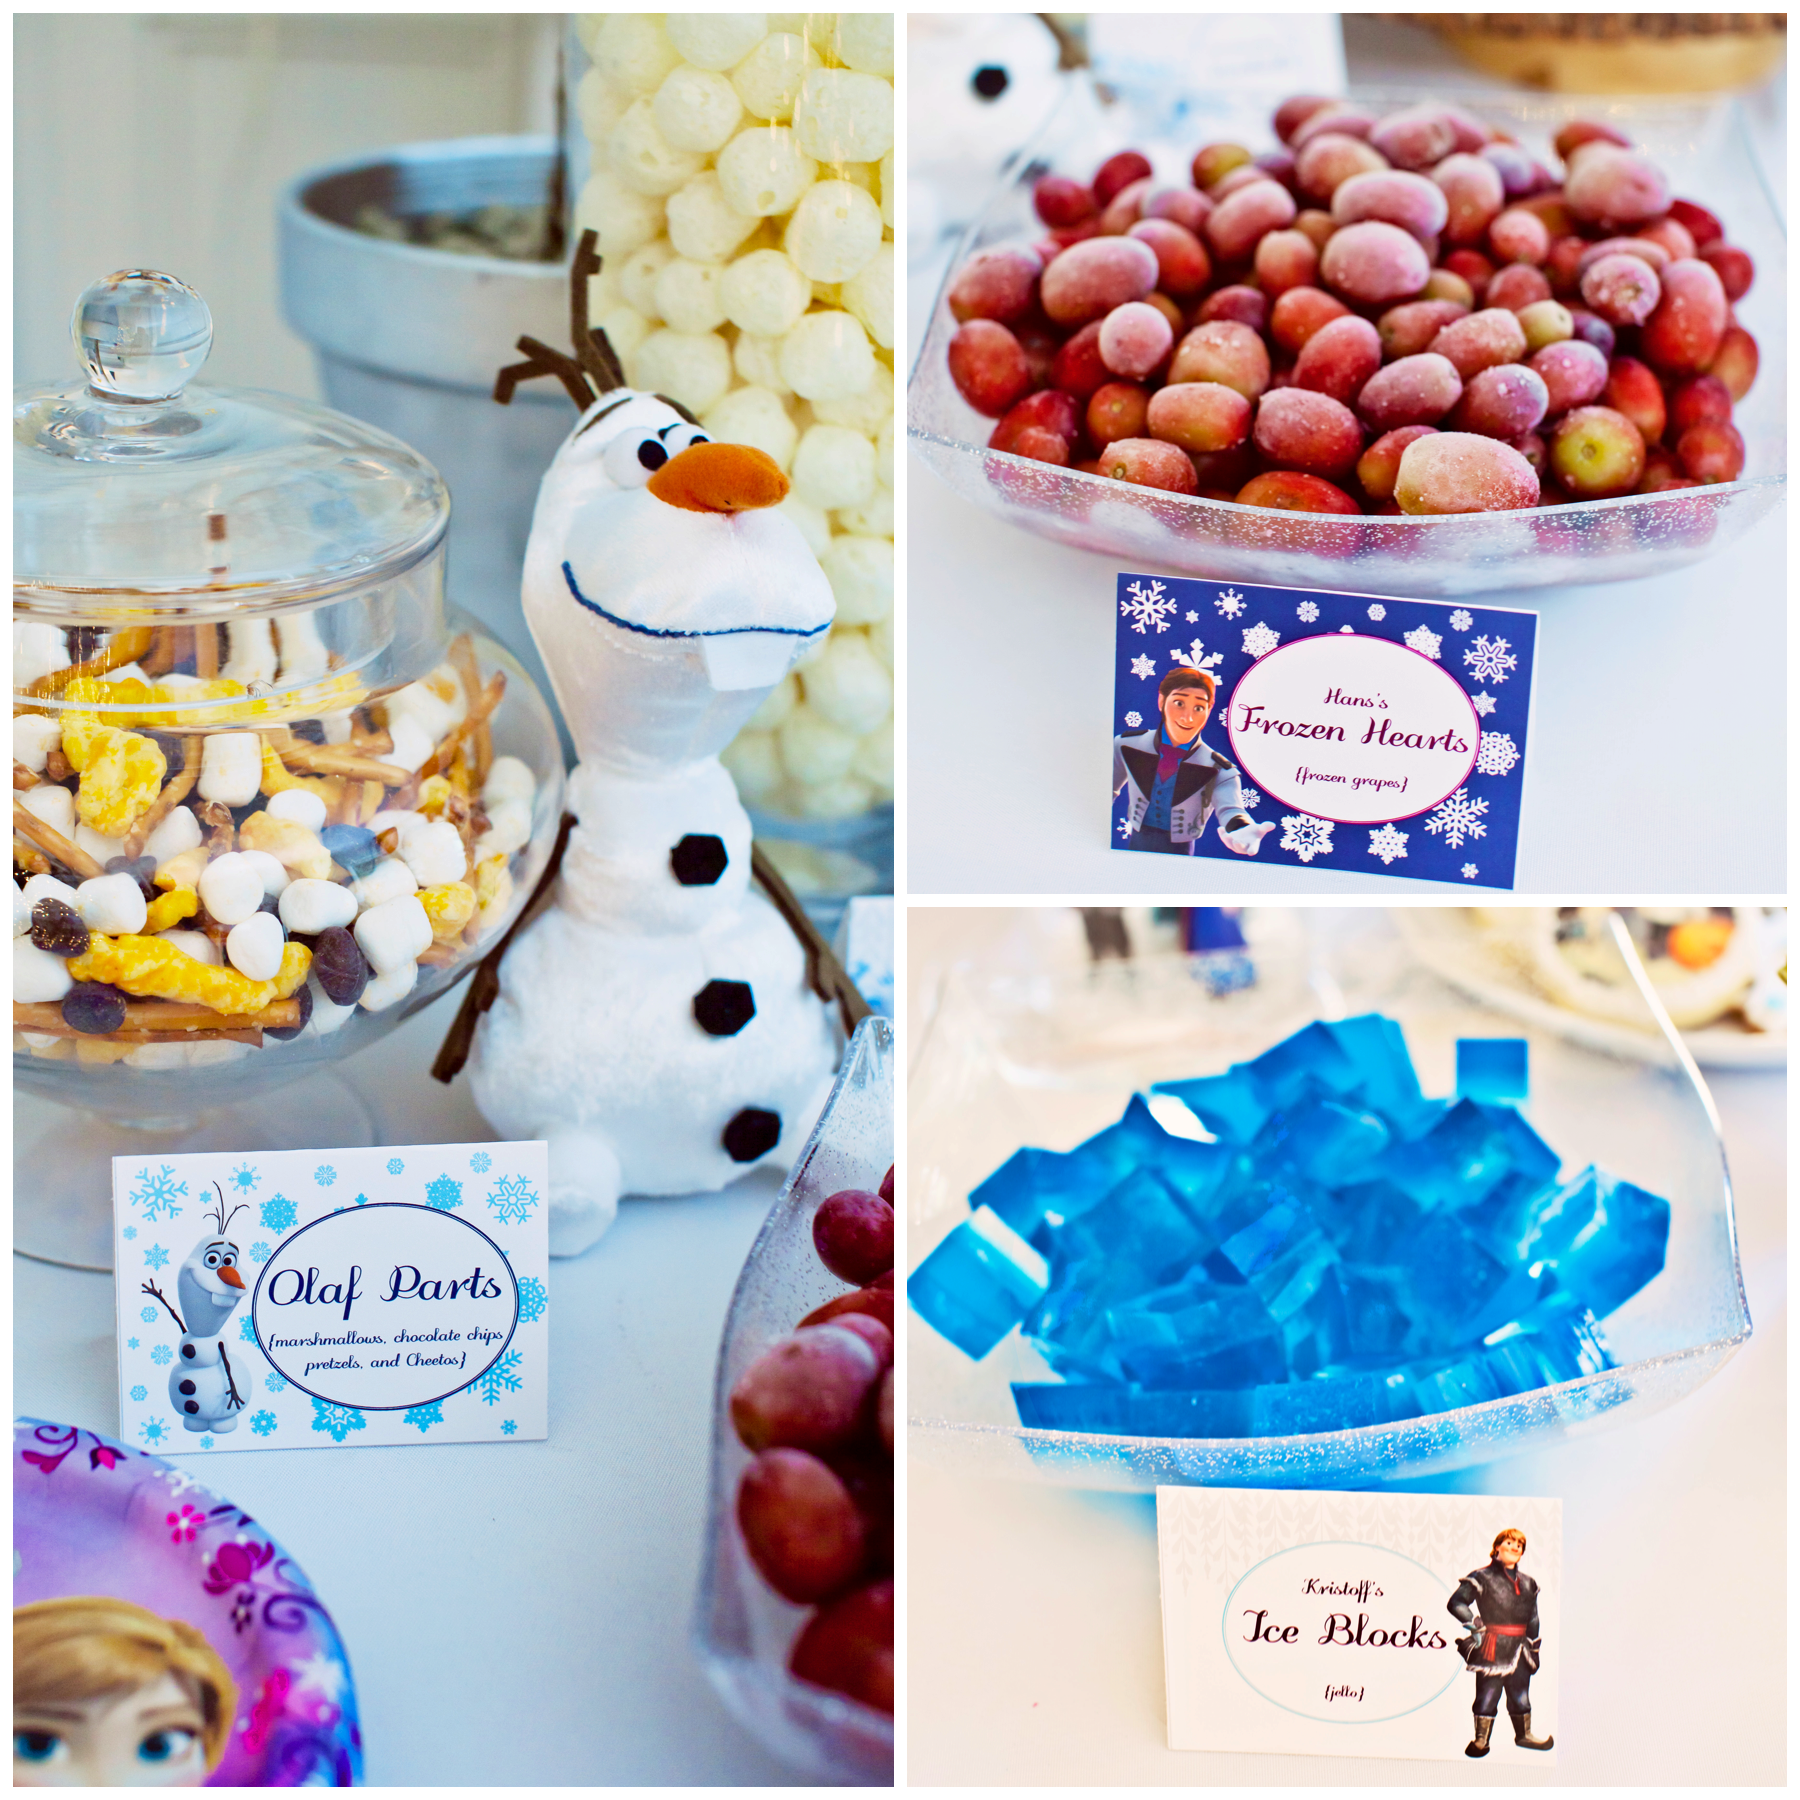 Olaf parts, Frozen hearts, jello ice blocks